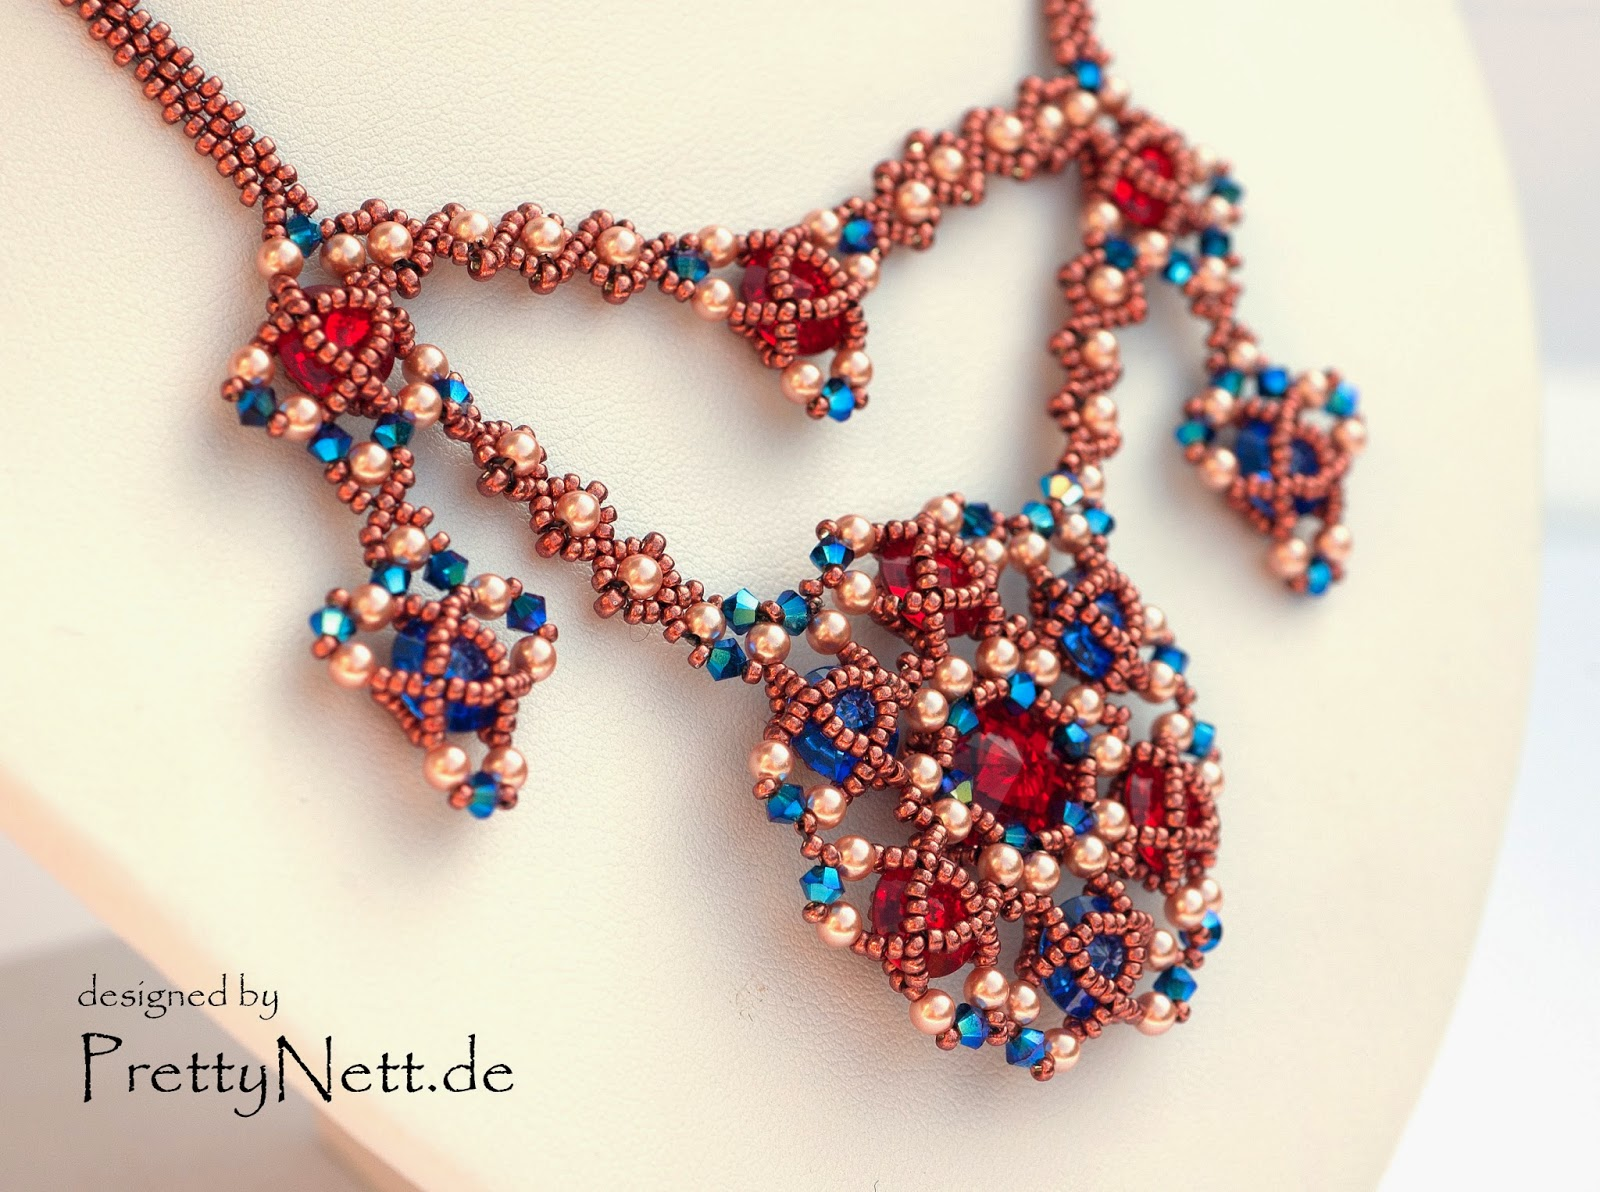 Necklace Arabesque designed by PrettyNett.de